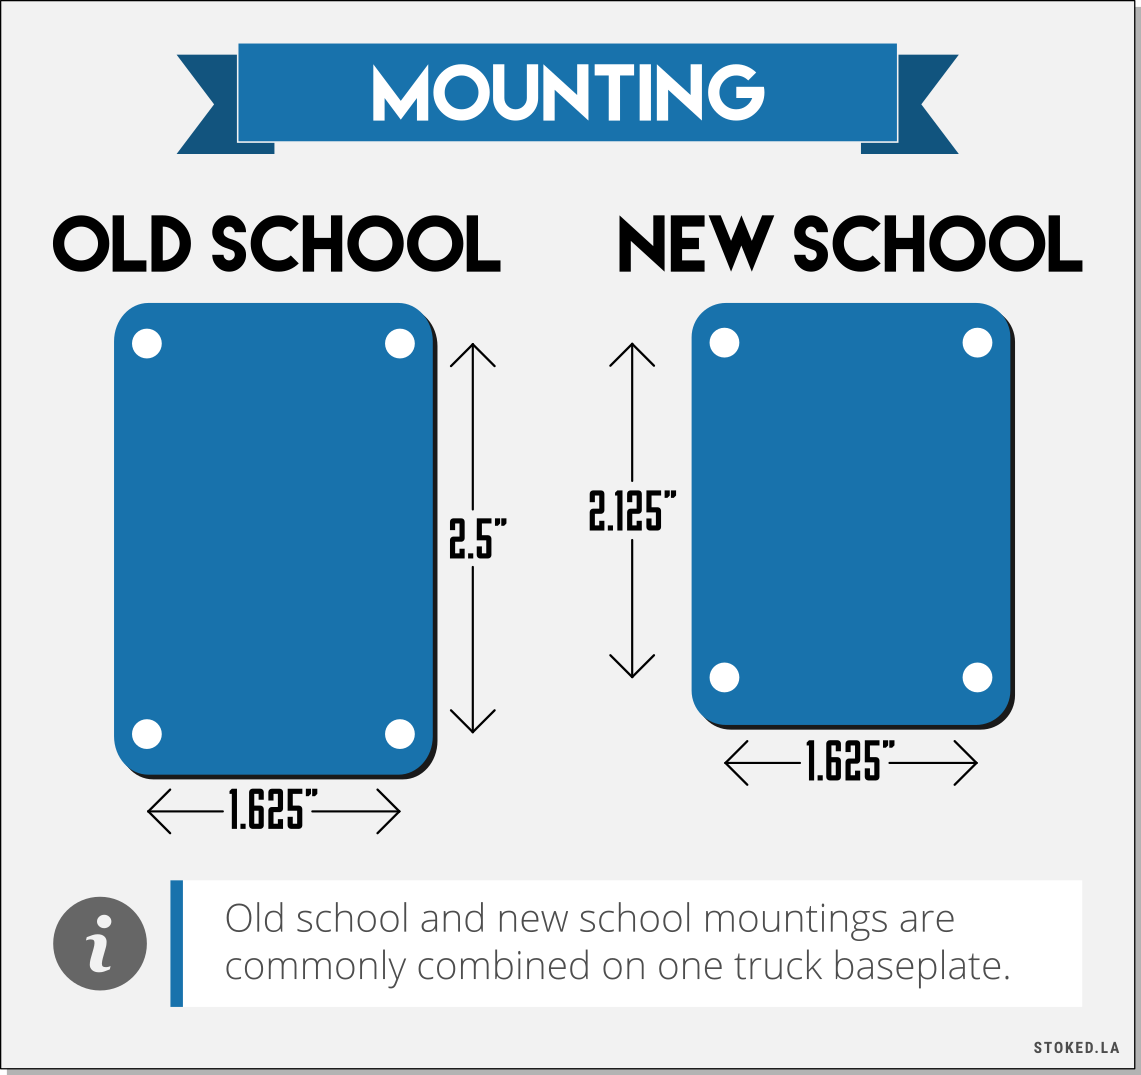 Mounting Patterns in Trucks Infographic